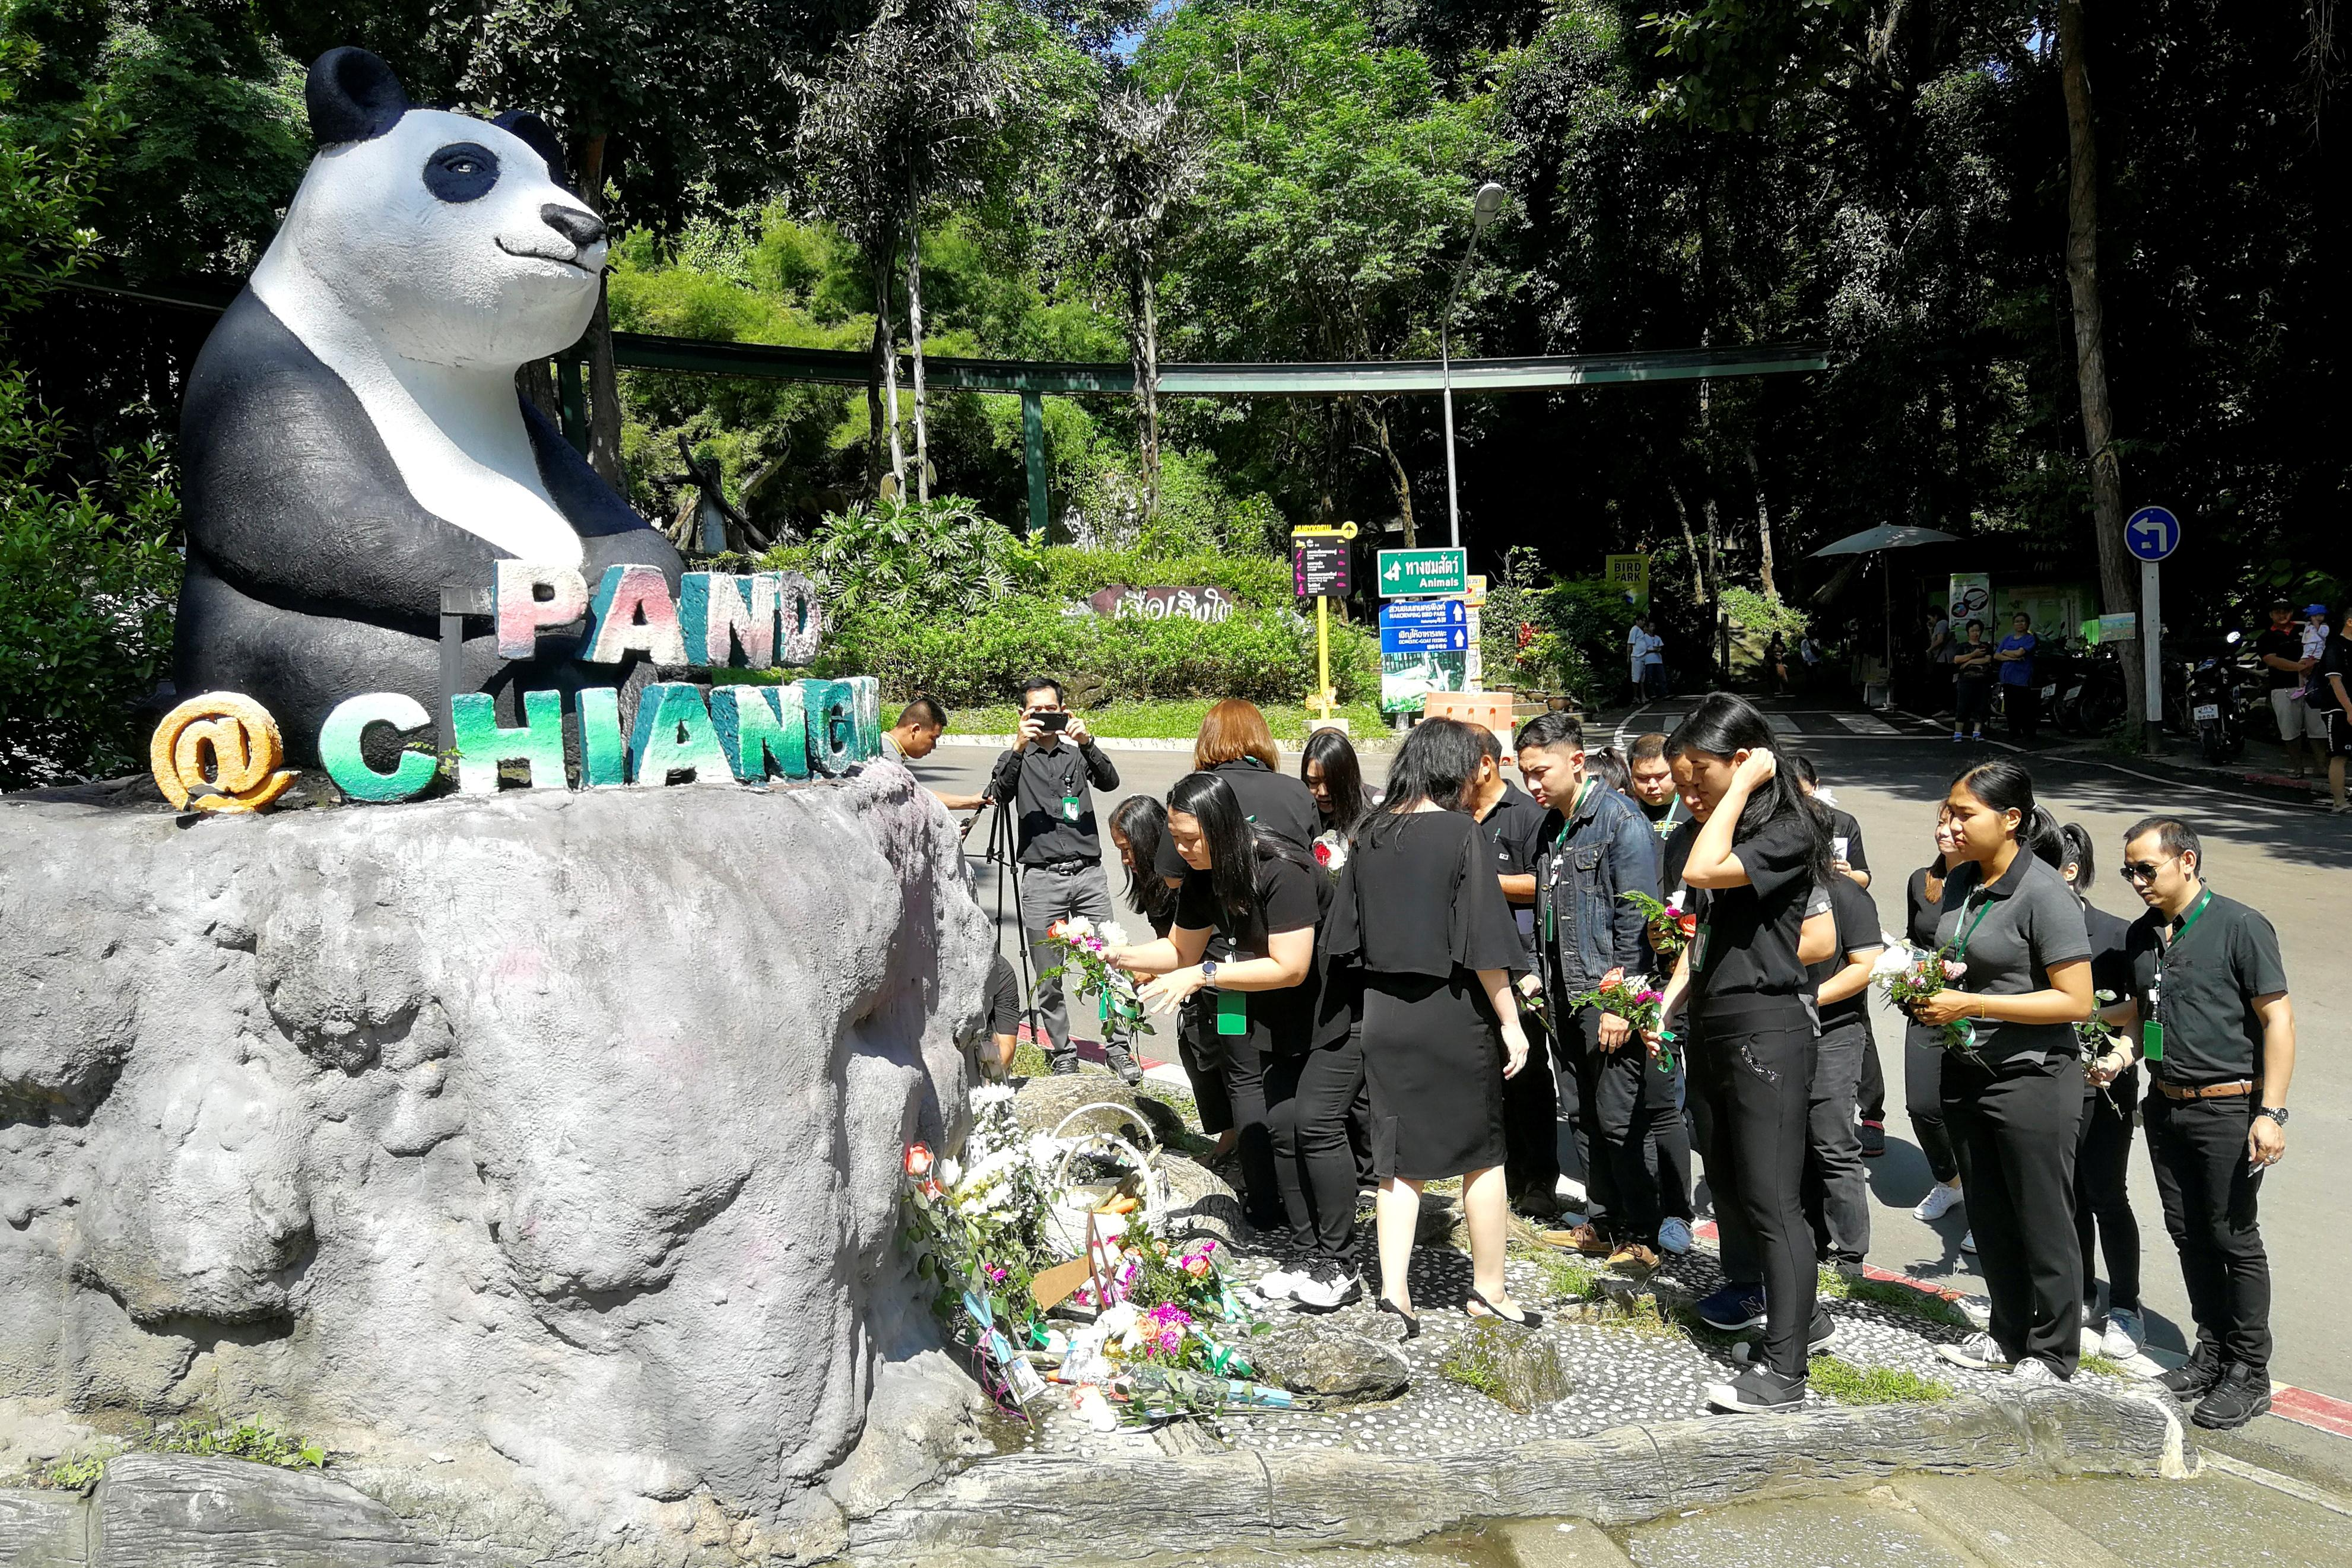 Panda autopsy preparations at Thai zoo as Chinese experts arrive